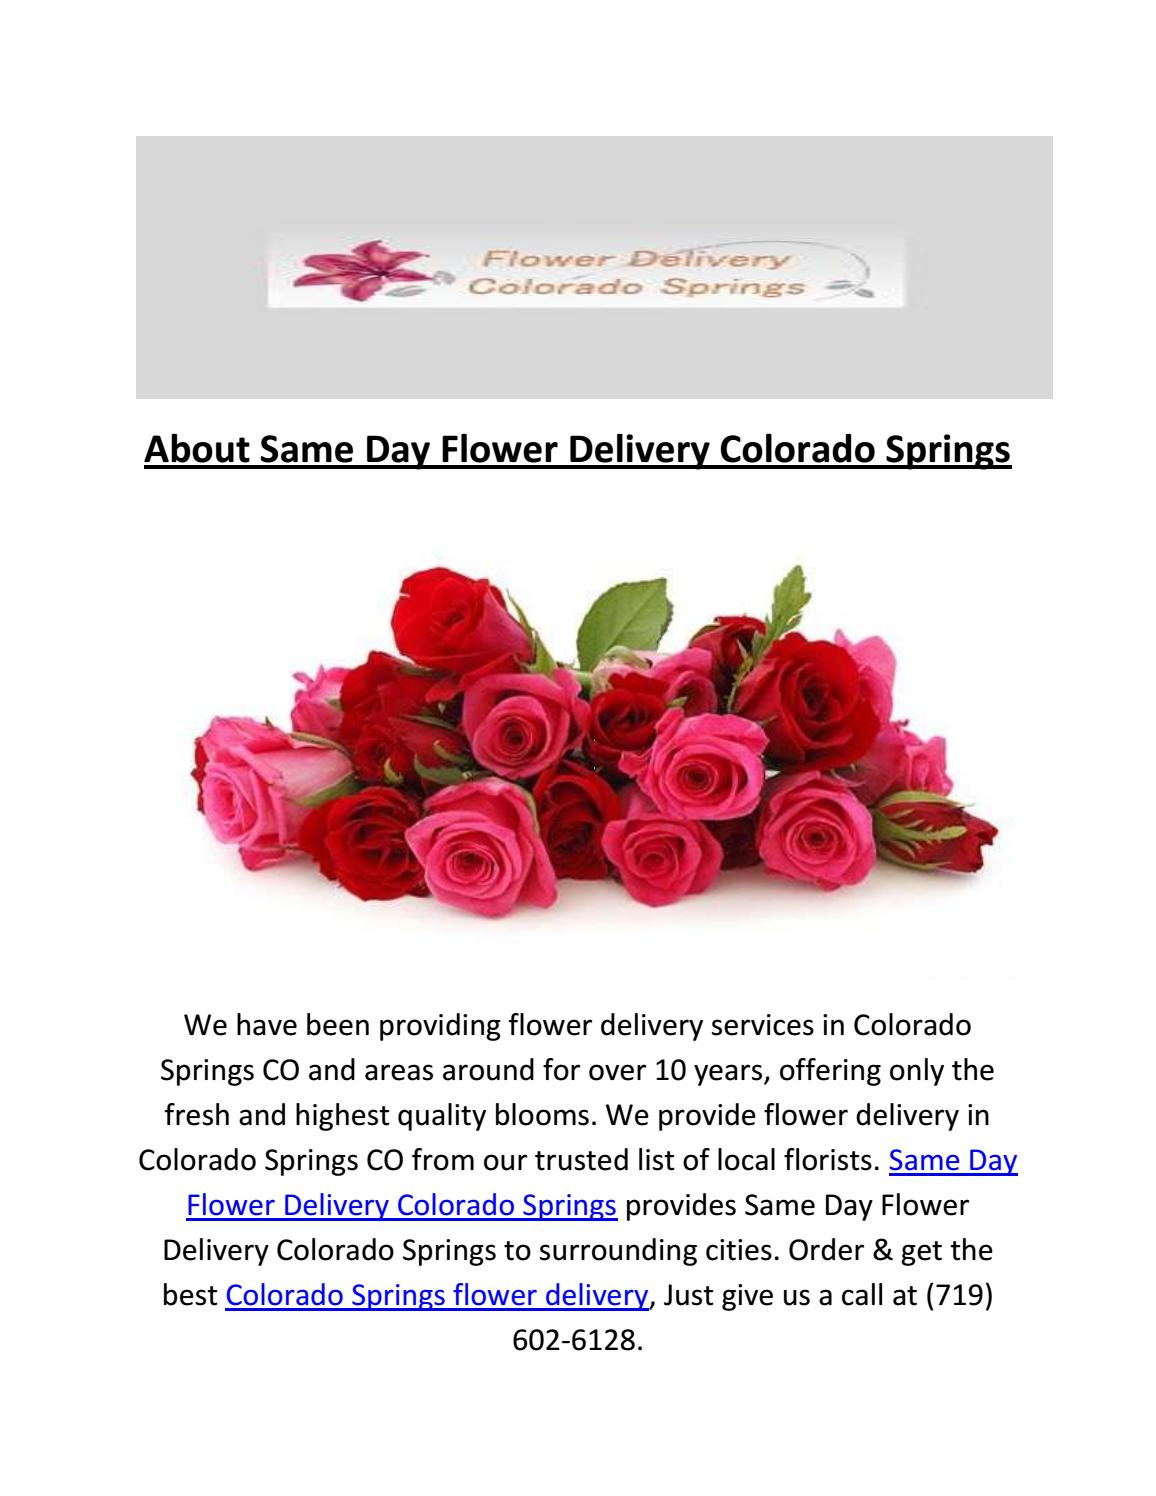 Call 719 602 6128 Same Day Flower Delivery Colorado Springs